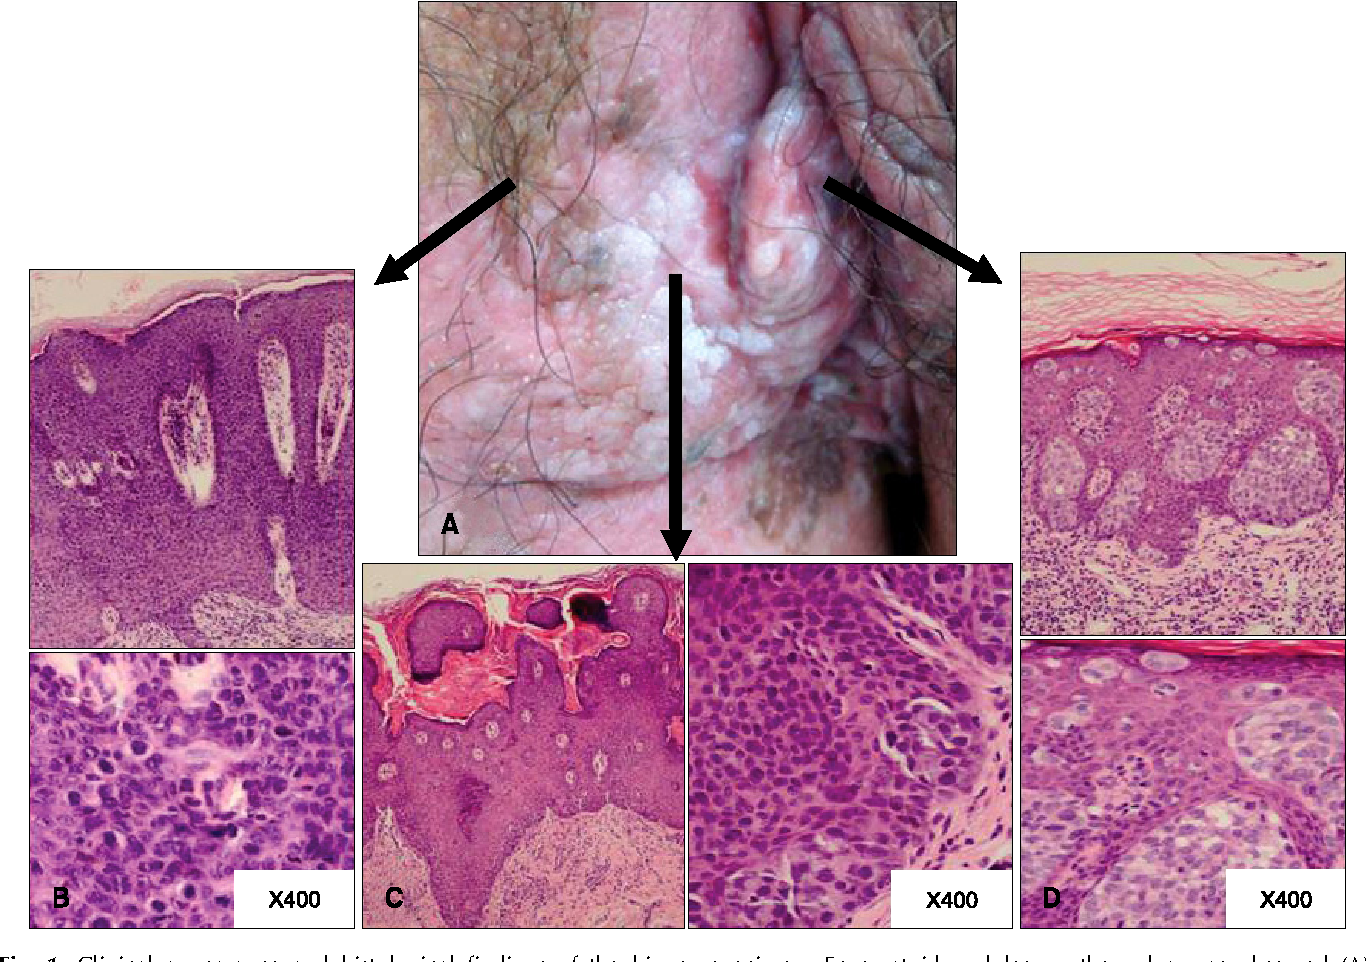 Pagets disease of the vulva picture picture